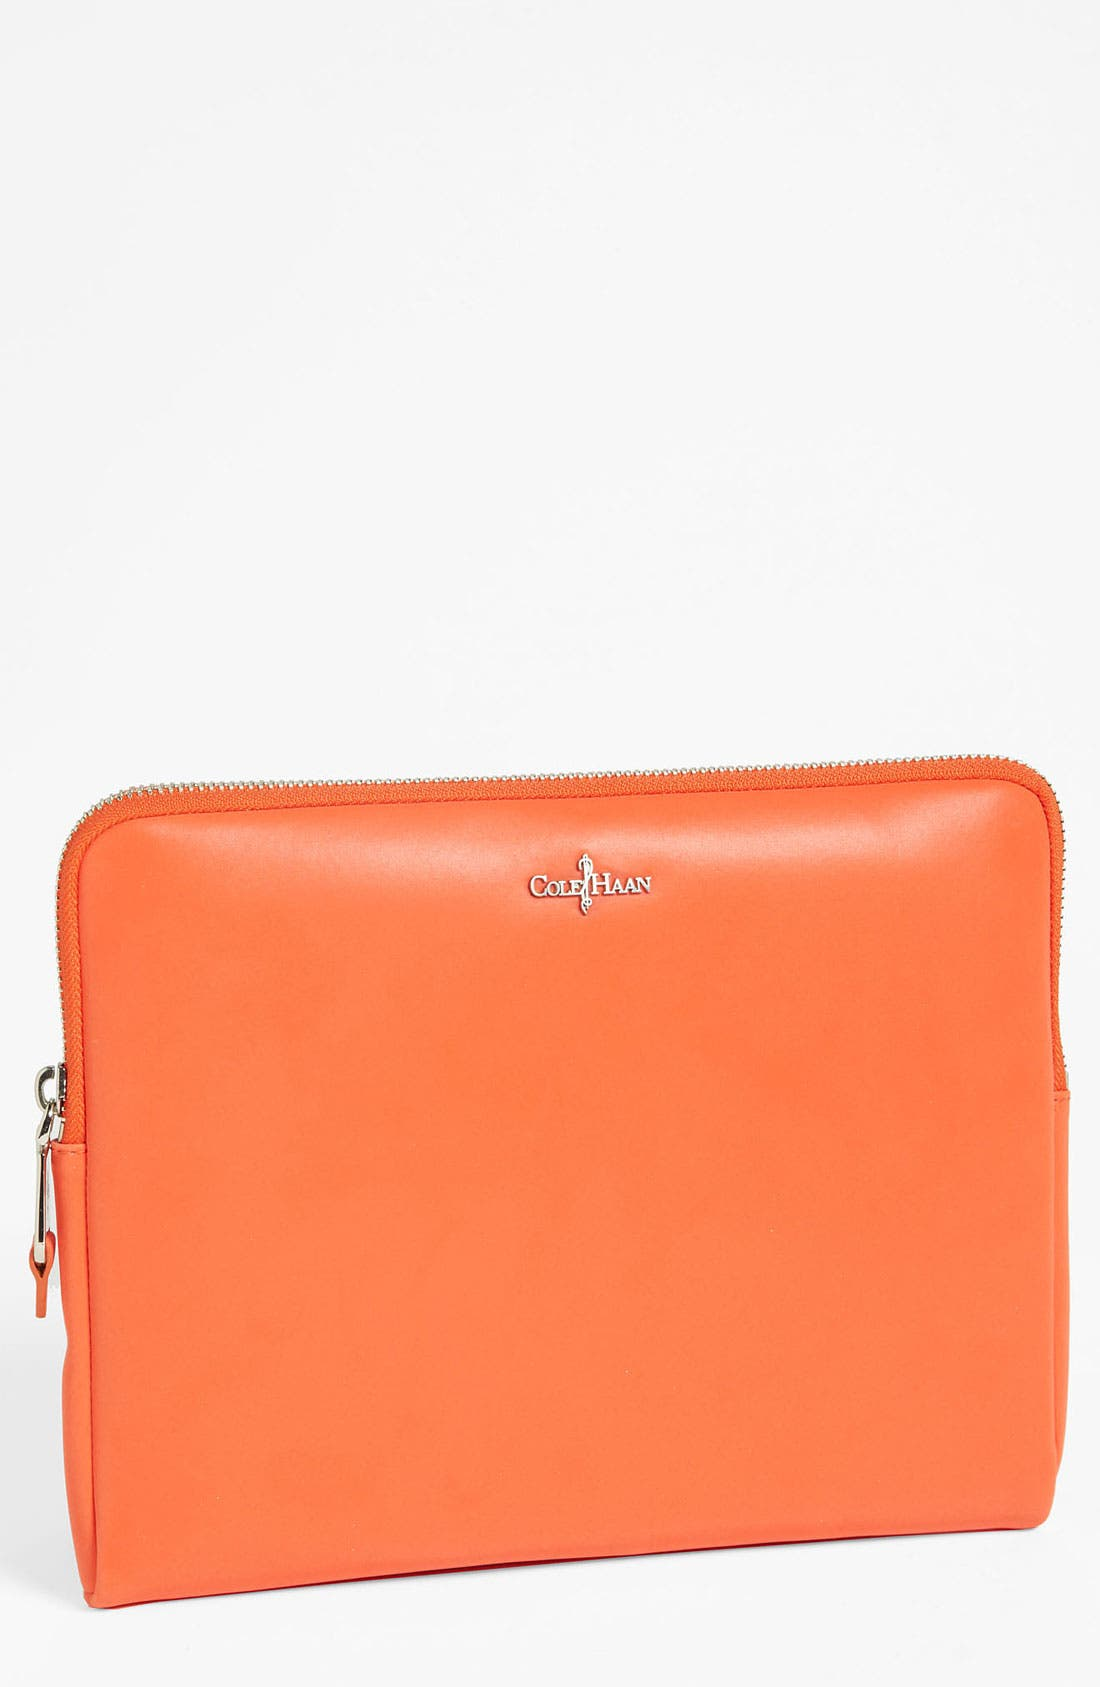 Main Image - Cole Haan Zip Around Tablet Case